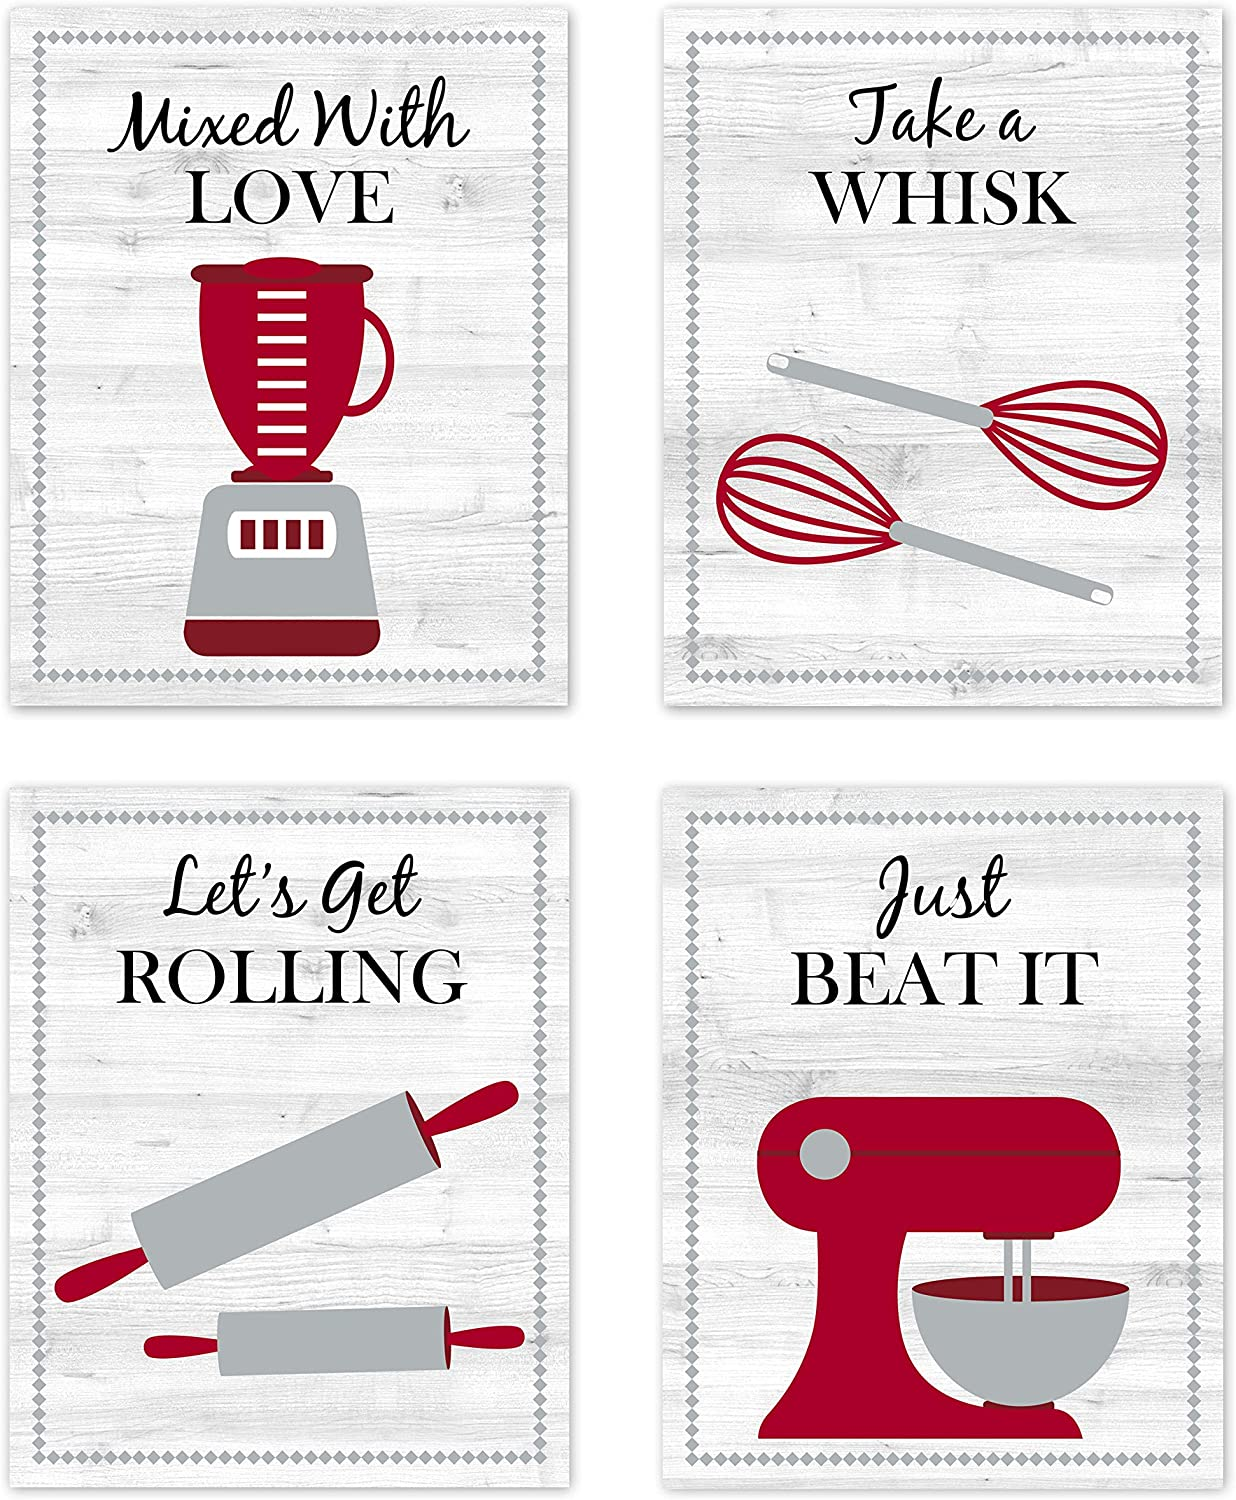 Red, Black, Gray and White Retro Vintage Inspirational Kitchen Restaurant Utensil Wall Art Baking Chef Cooking Wood Grain Prints Posters Signs Sets for Rustic Modern Farmhouse Country Home Dining Room Decor Decorations Funny Sayings Quotes Unframed 8x10